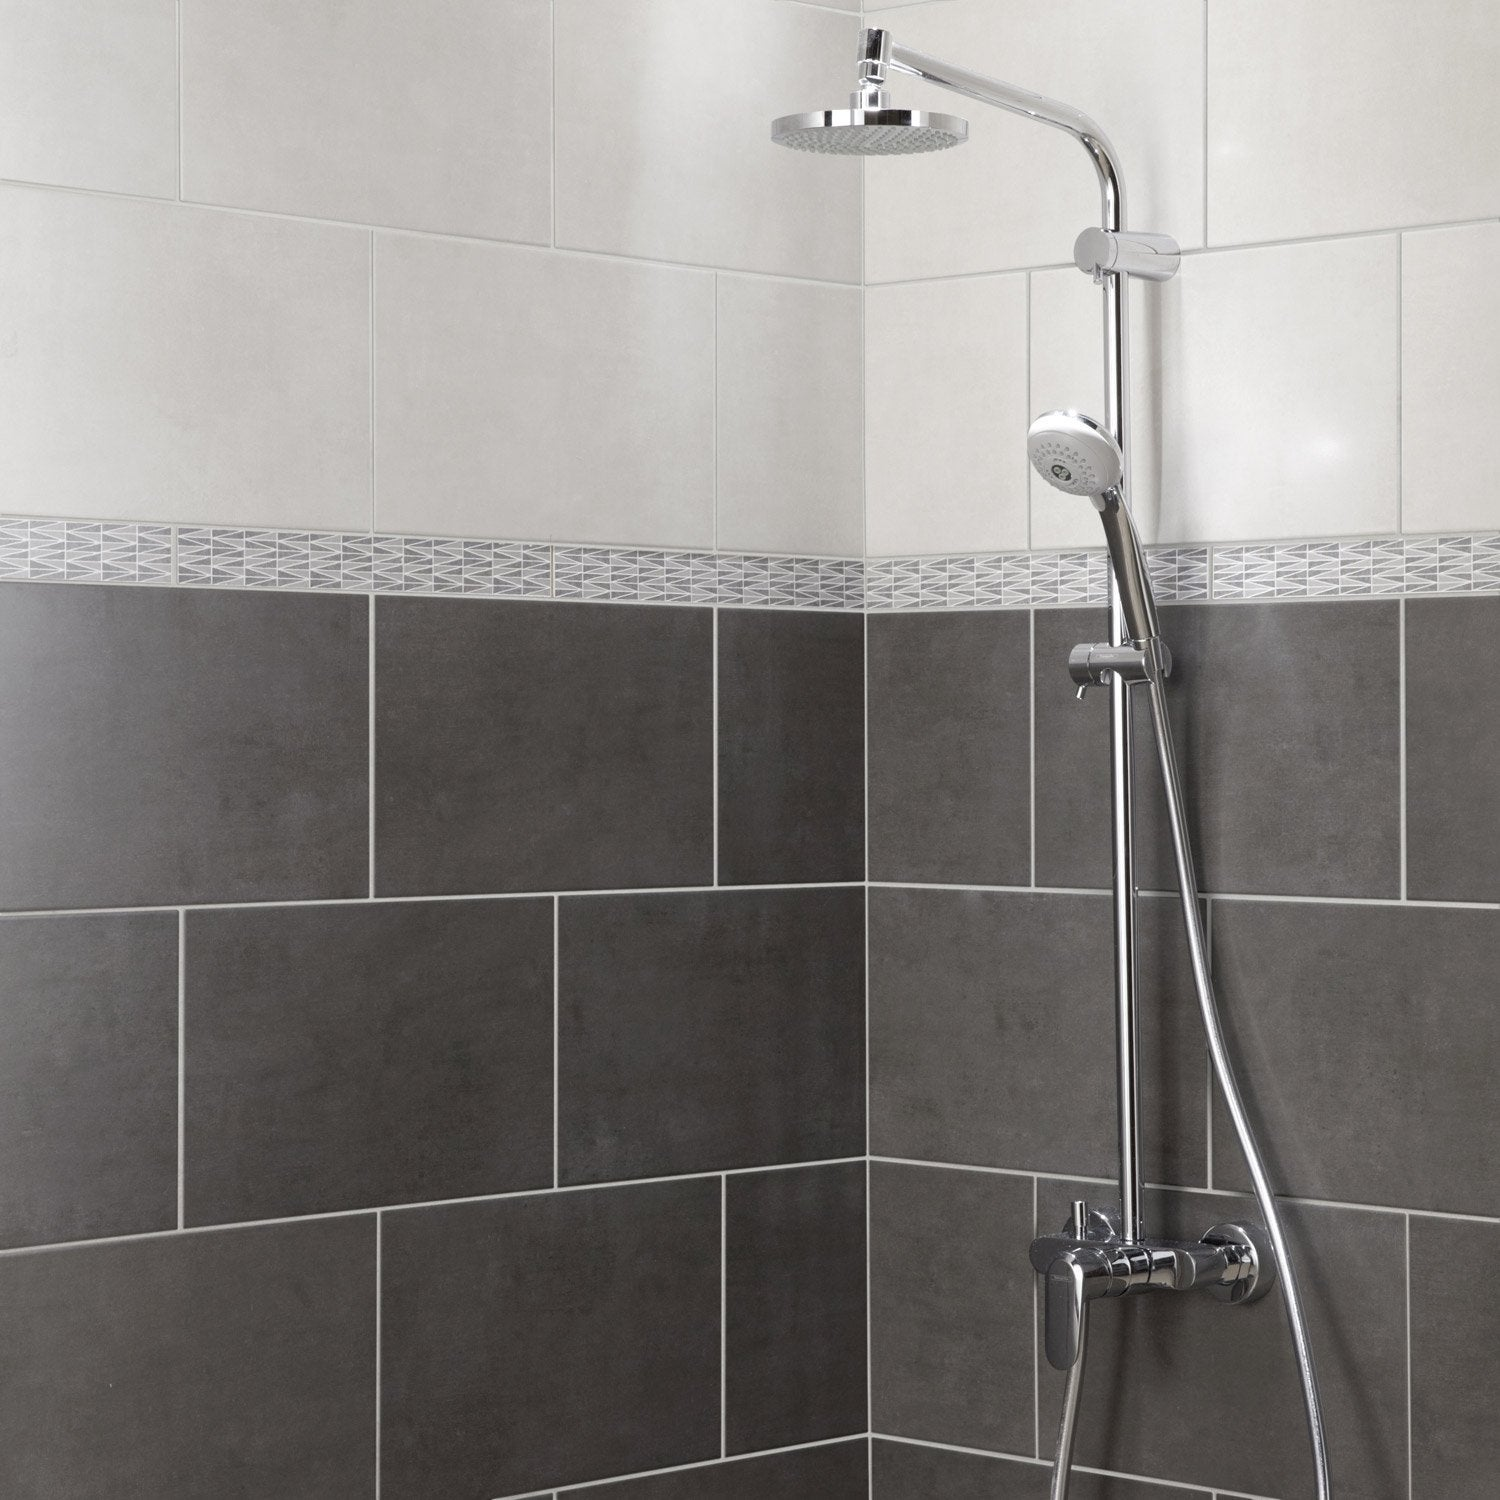 Fa ence mur anthracite smart x cm leroy merlin for Faience salle de bain blanche